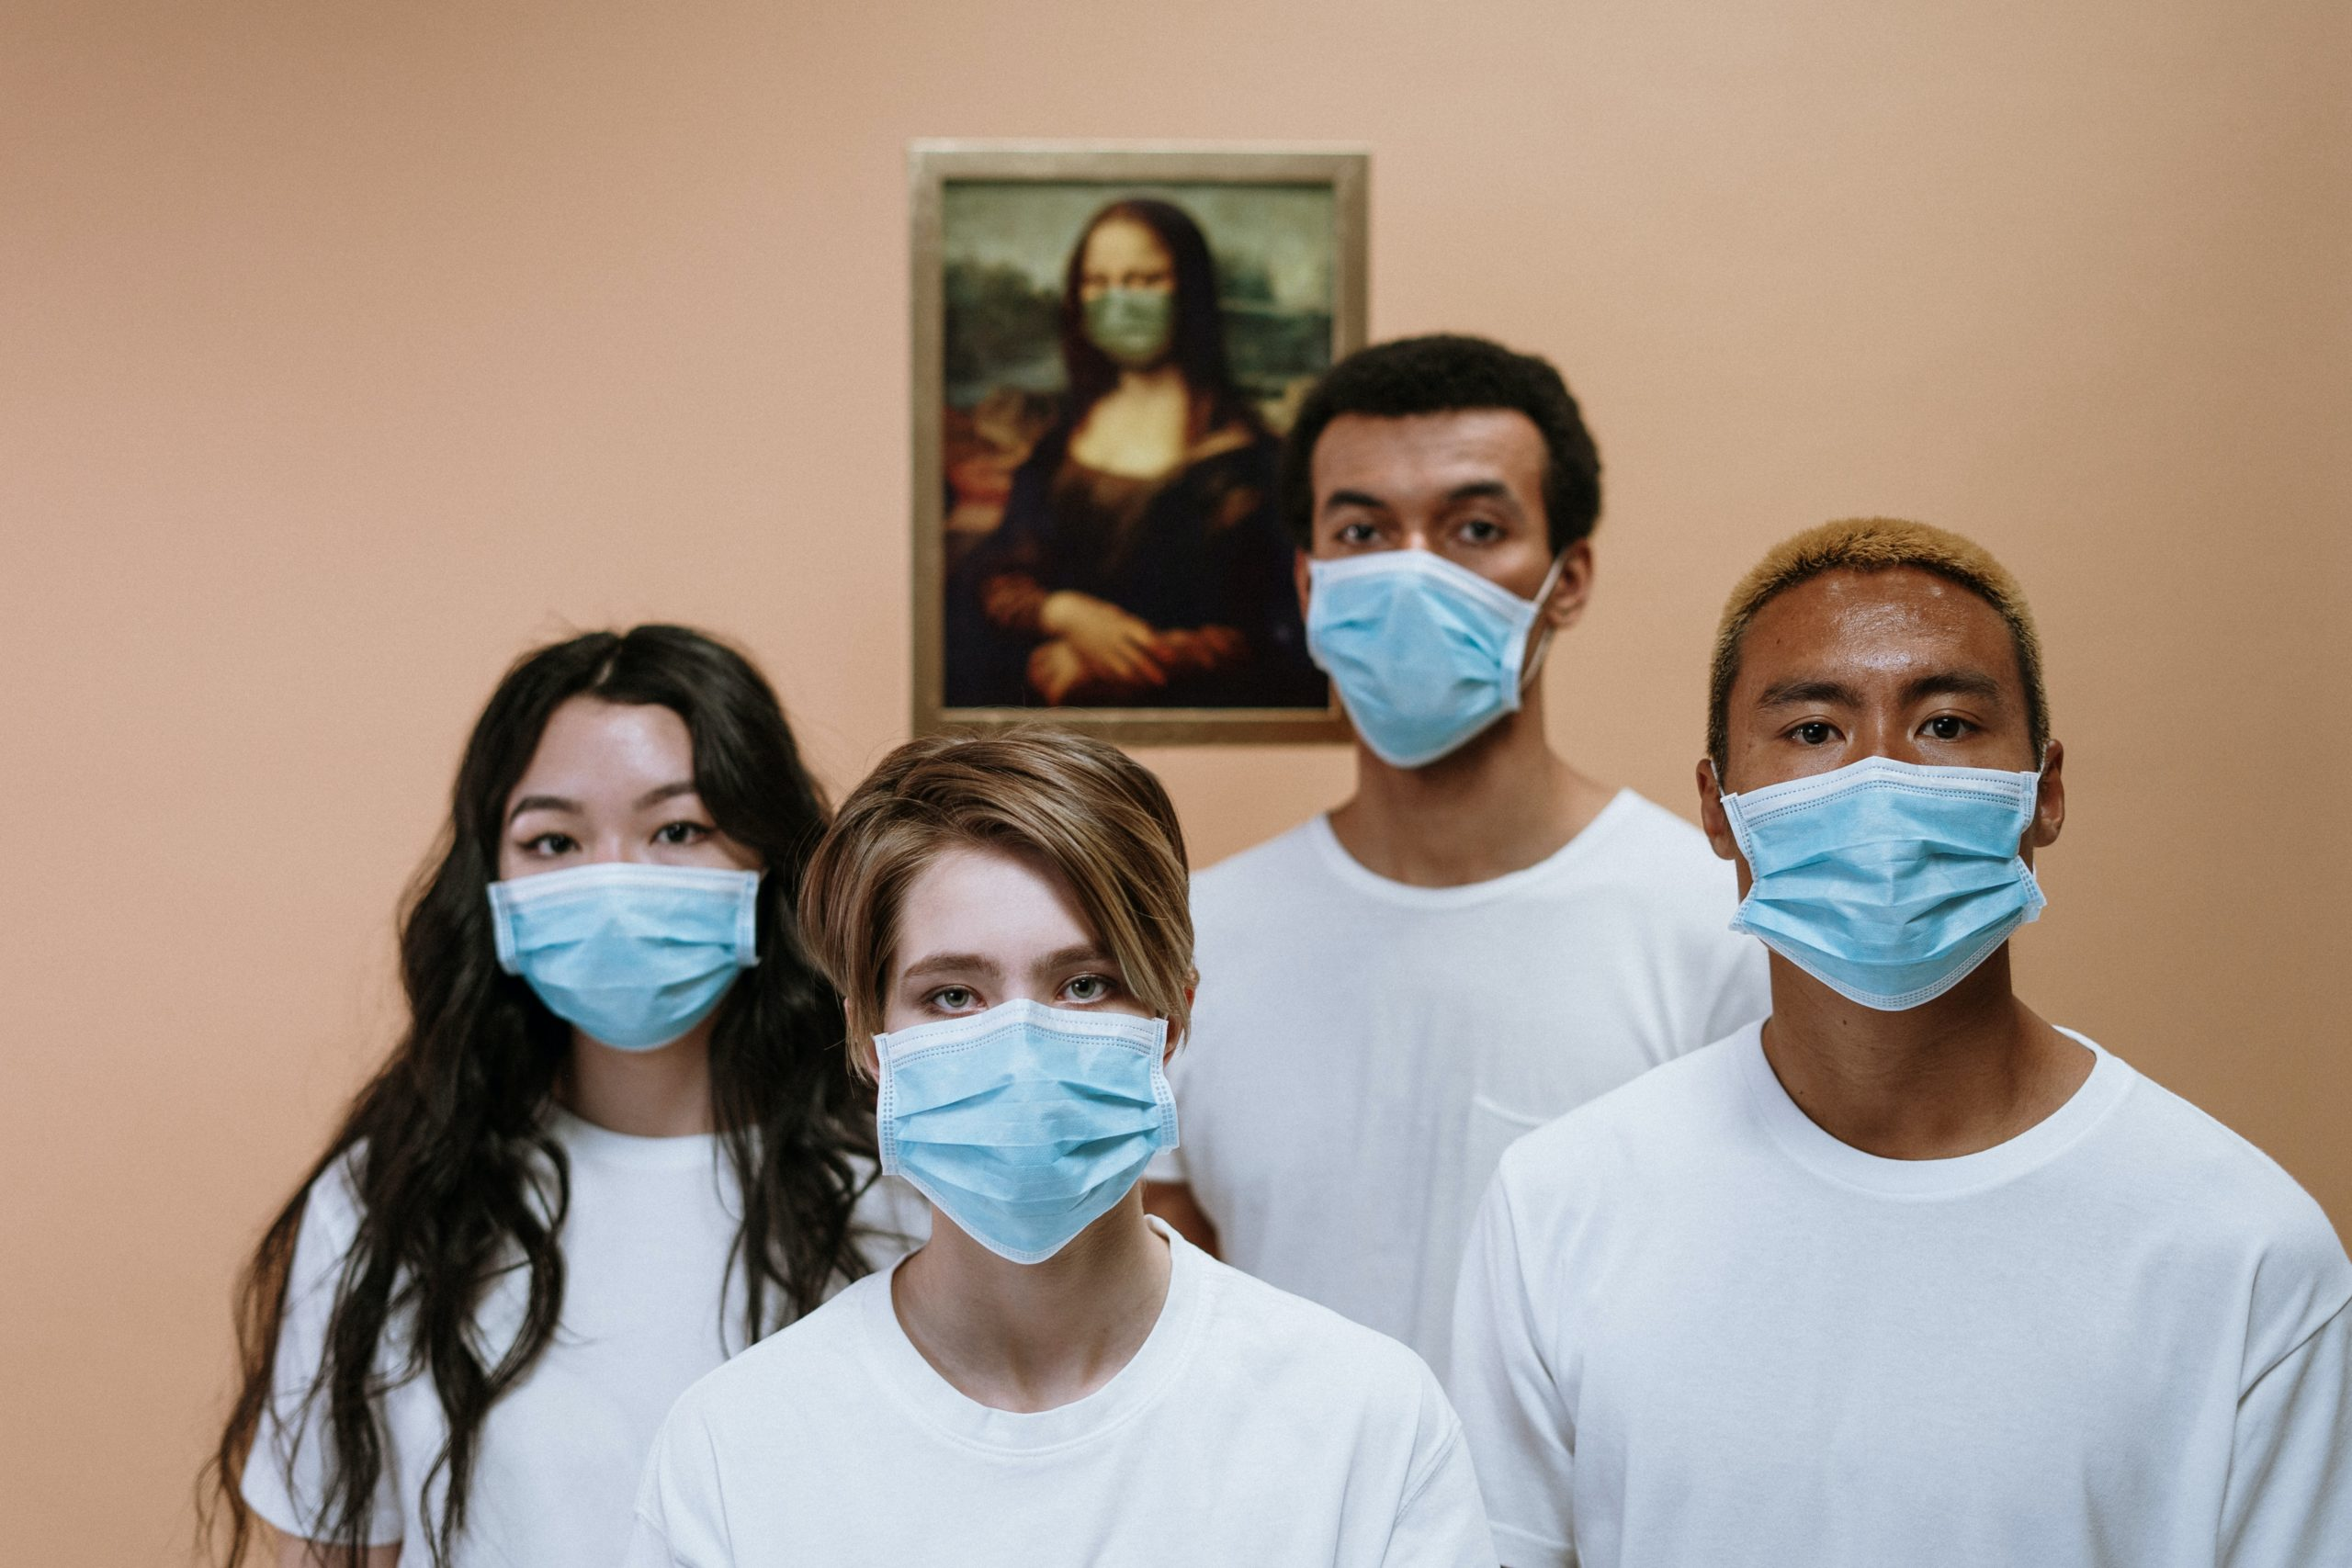 Four people wearing surgical masks while standing in fron of the Mona Lisa that is also wearing a mask.